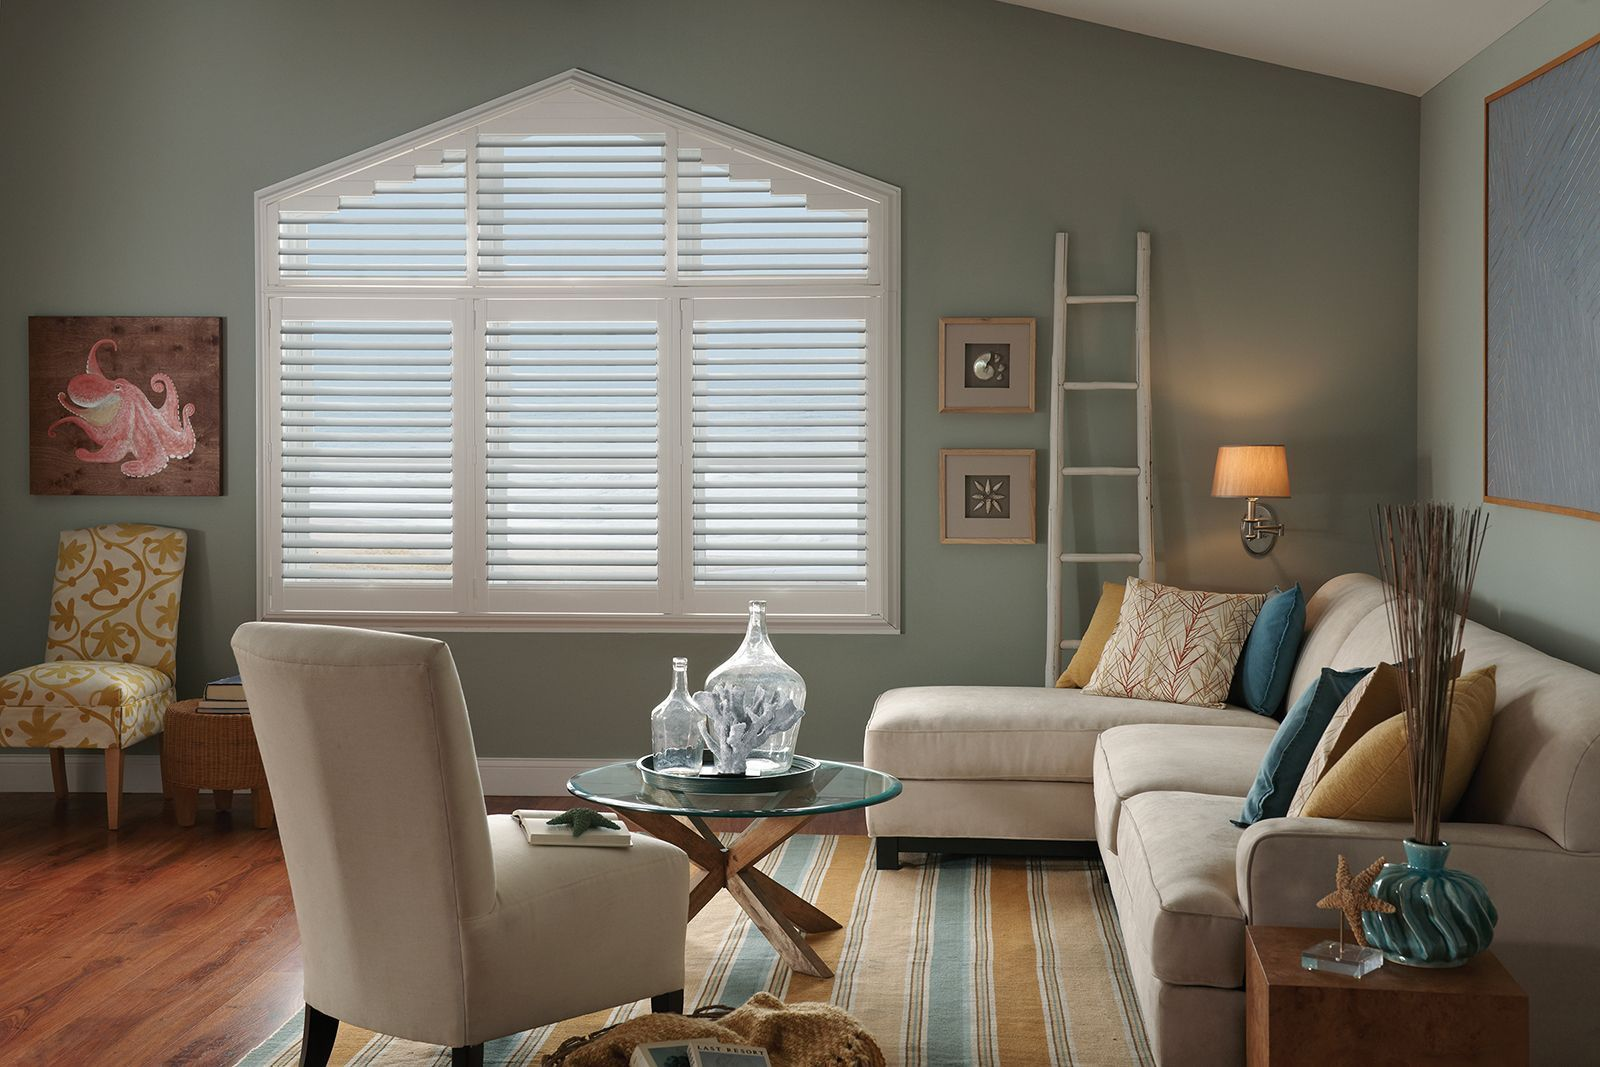 We can customize shutters for your Aframe windows. These